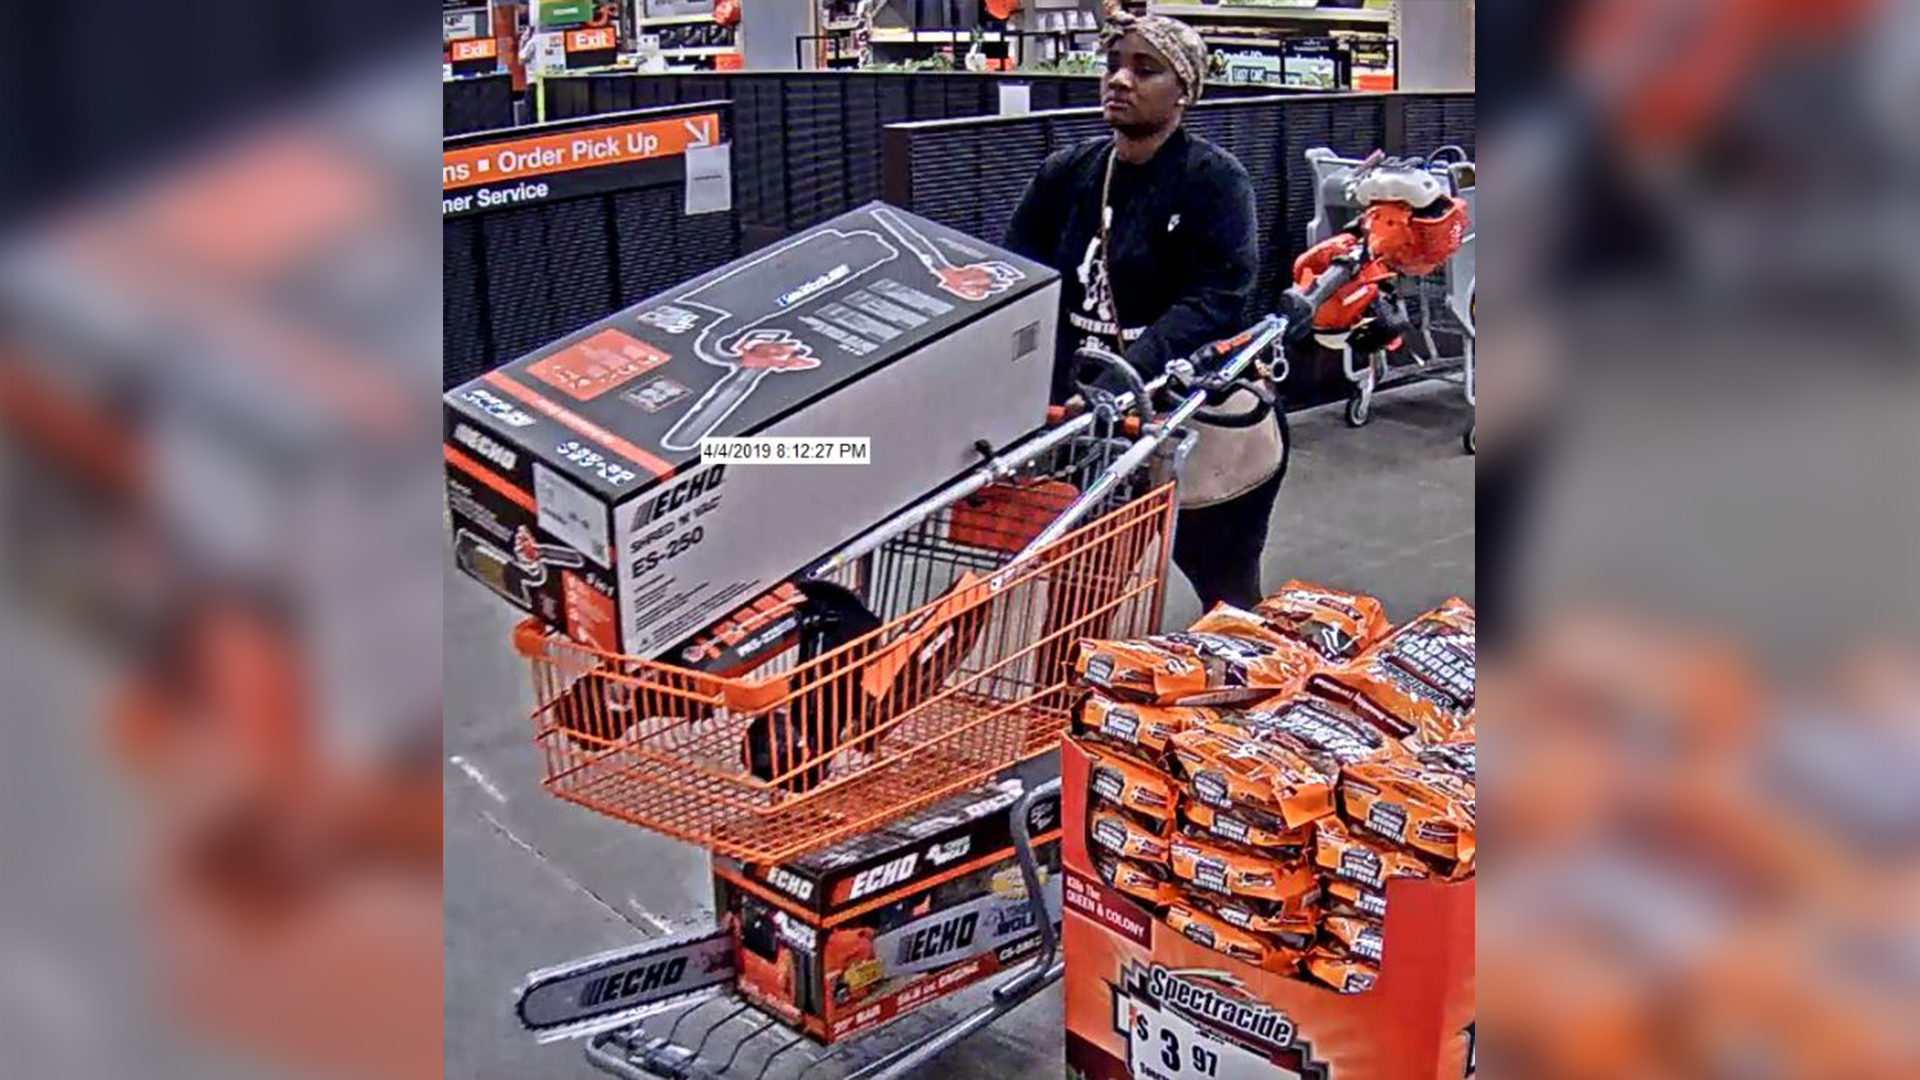 EBRSO captures Home Depot and Lowe's Suspects